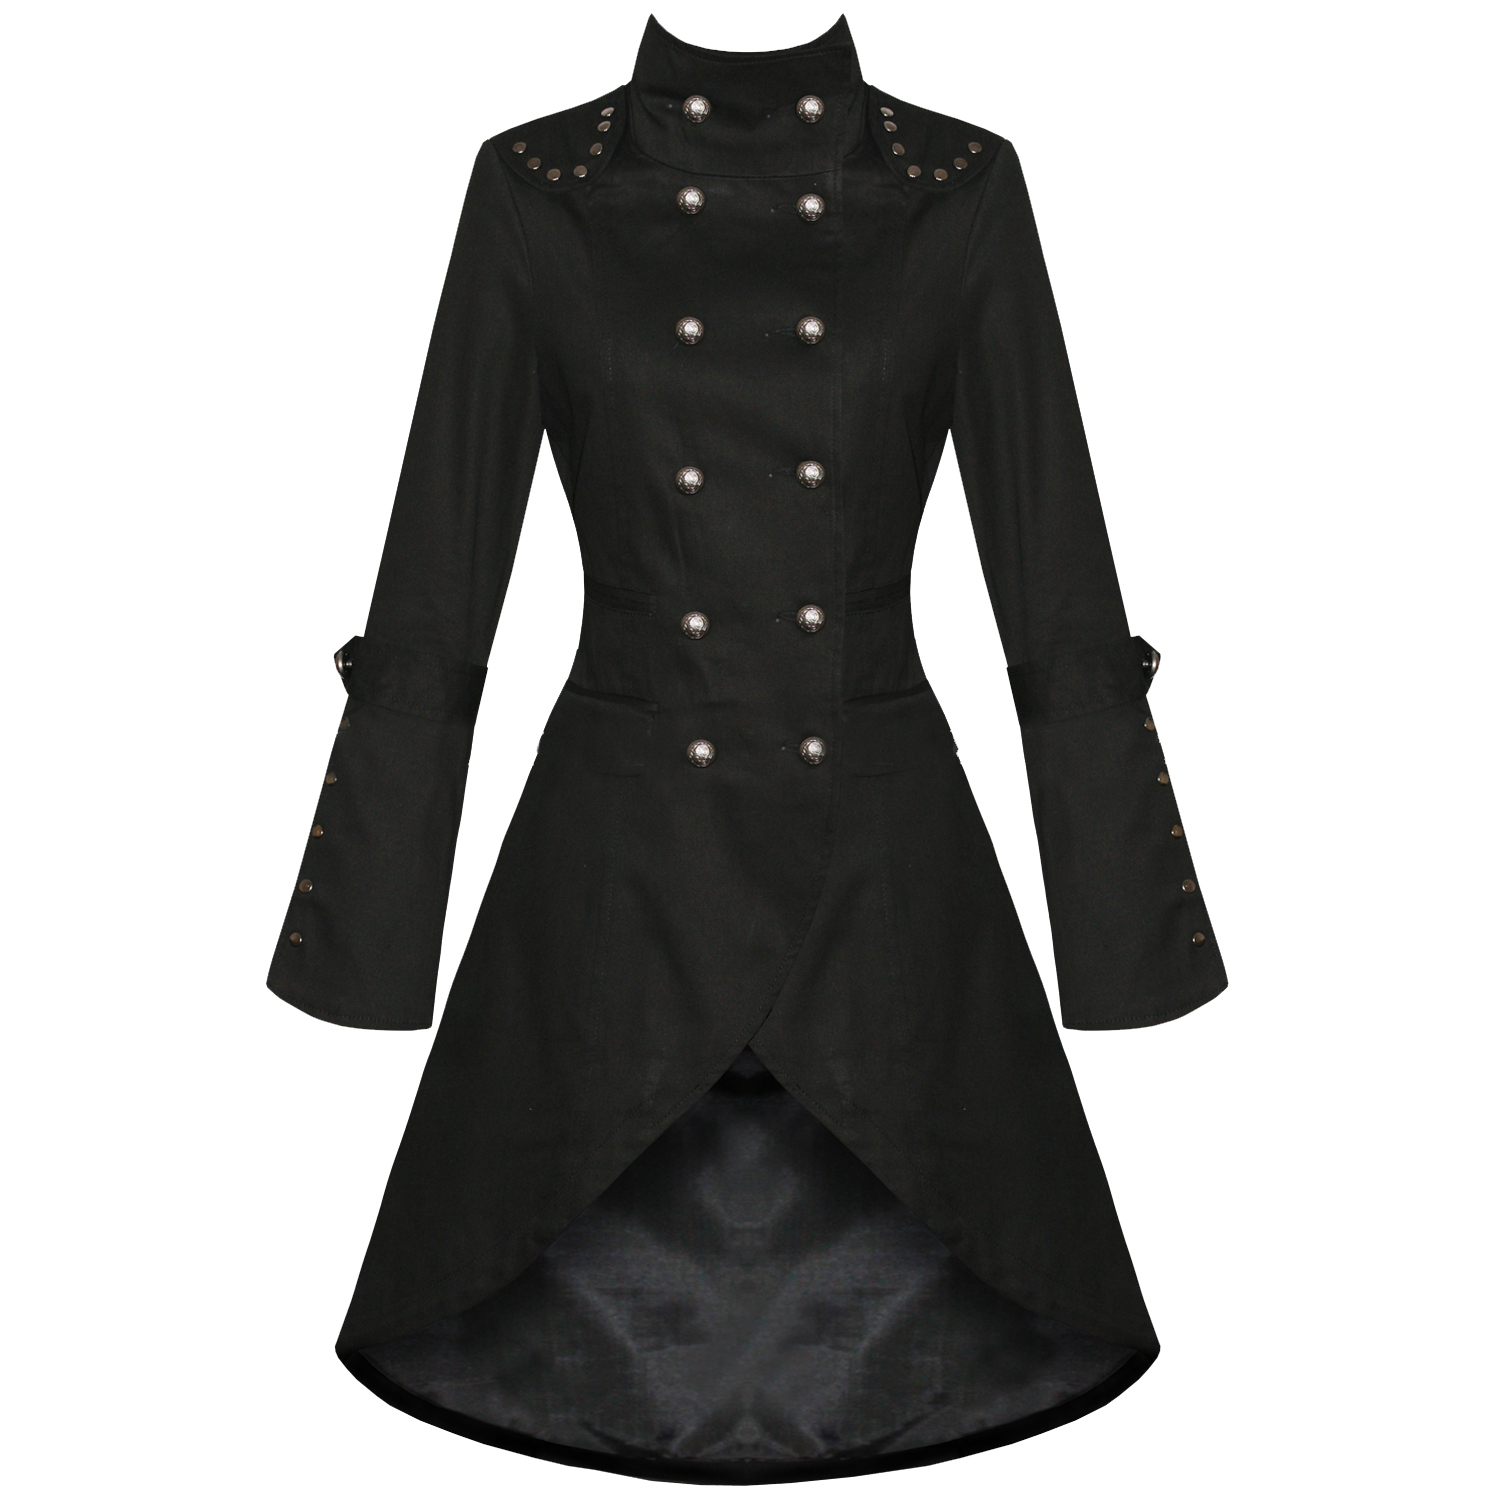 WOMENS-LADIES-NEW-BLACK-GOTHIC-STEAMPUNK-MILITARY-COTTON-COAT-JACKET